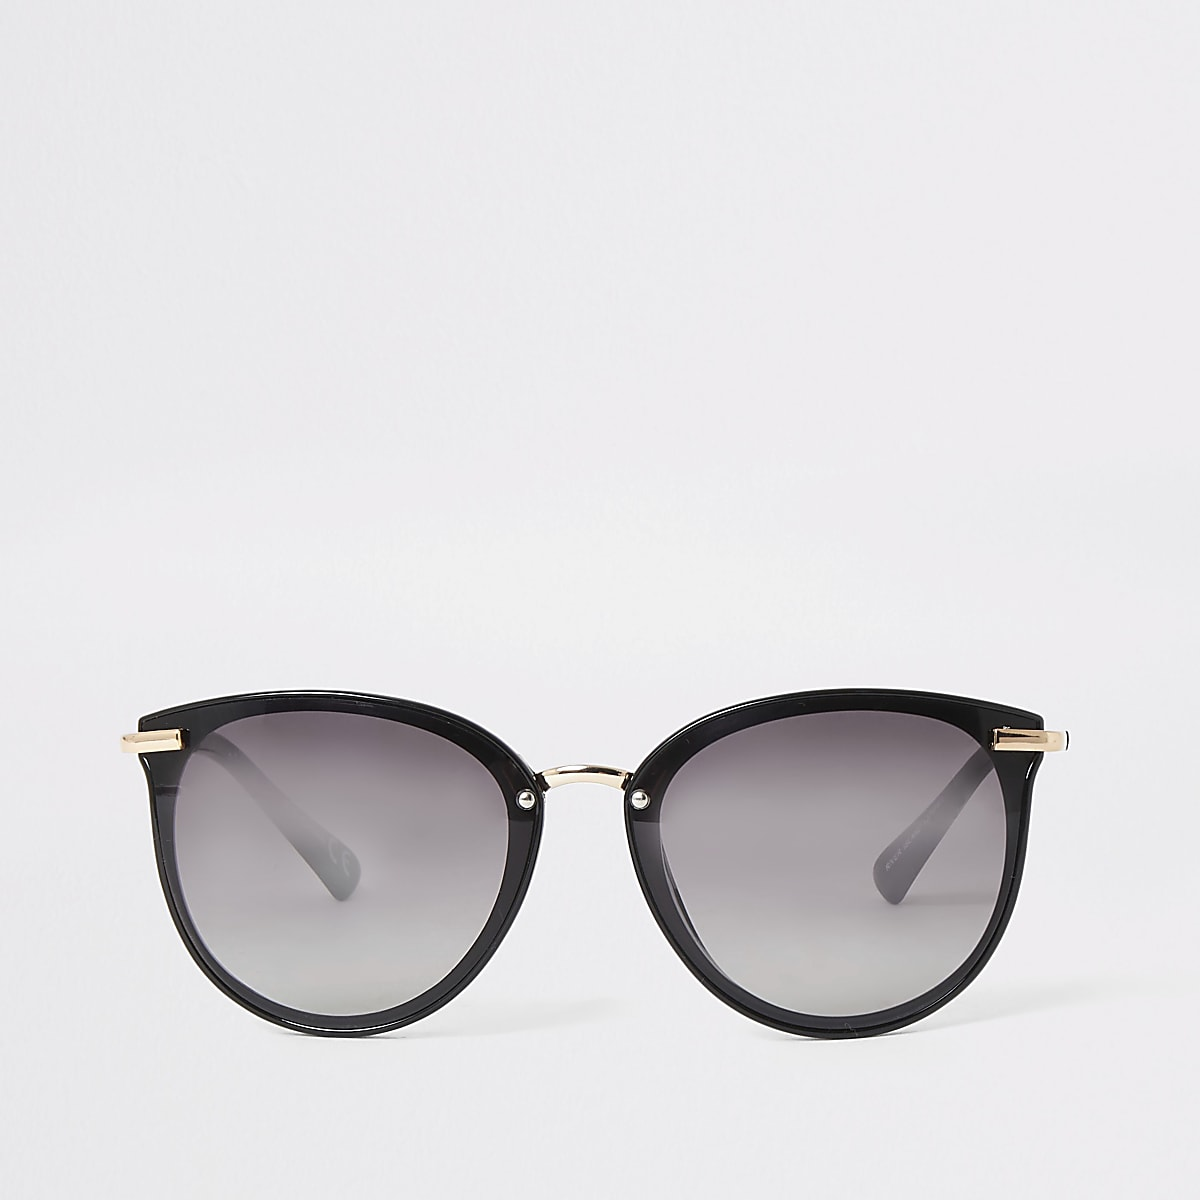 Black smoke lens retro sunglasses